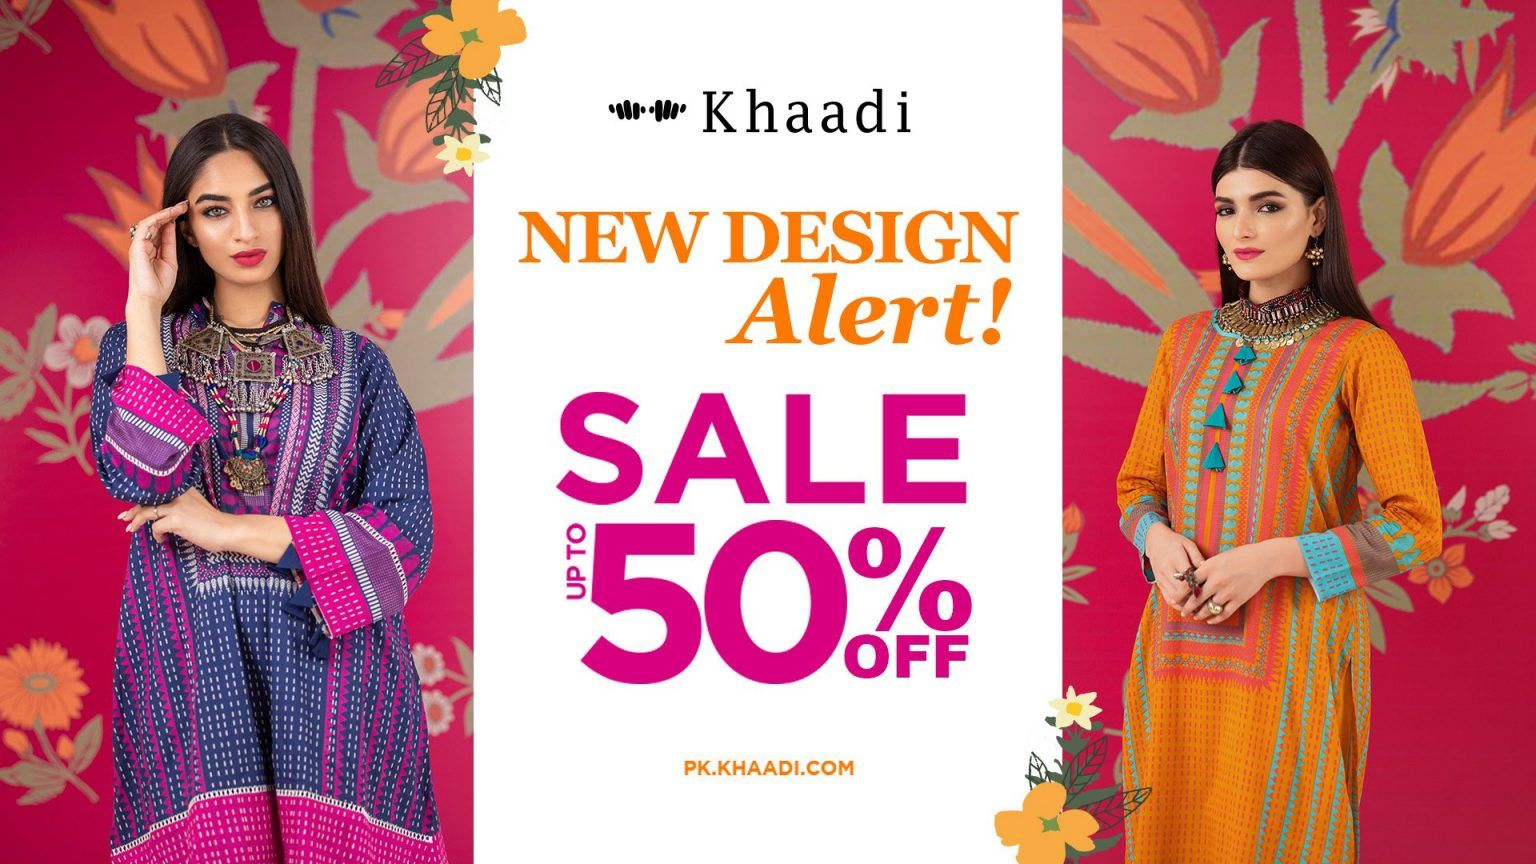 Khaadi end of season sale in 2021   Khaadi, Winter collection, Best clothing brands